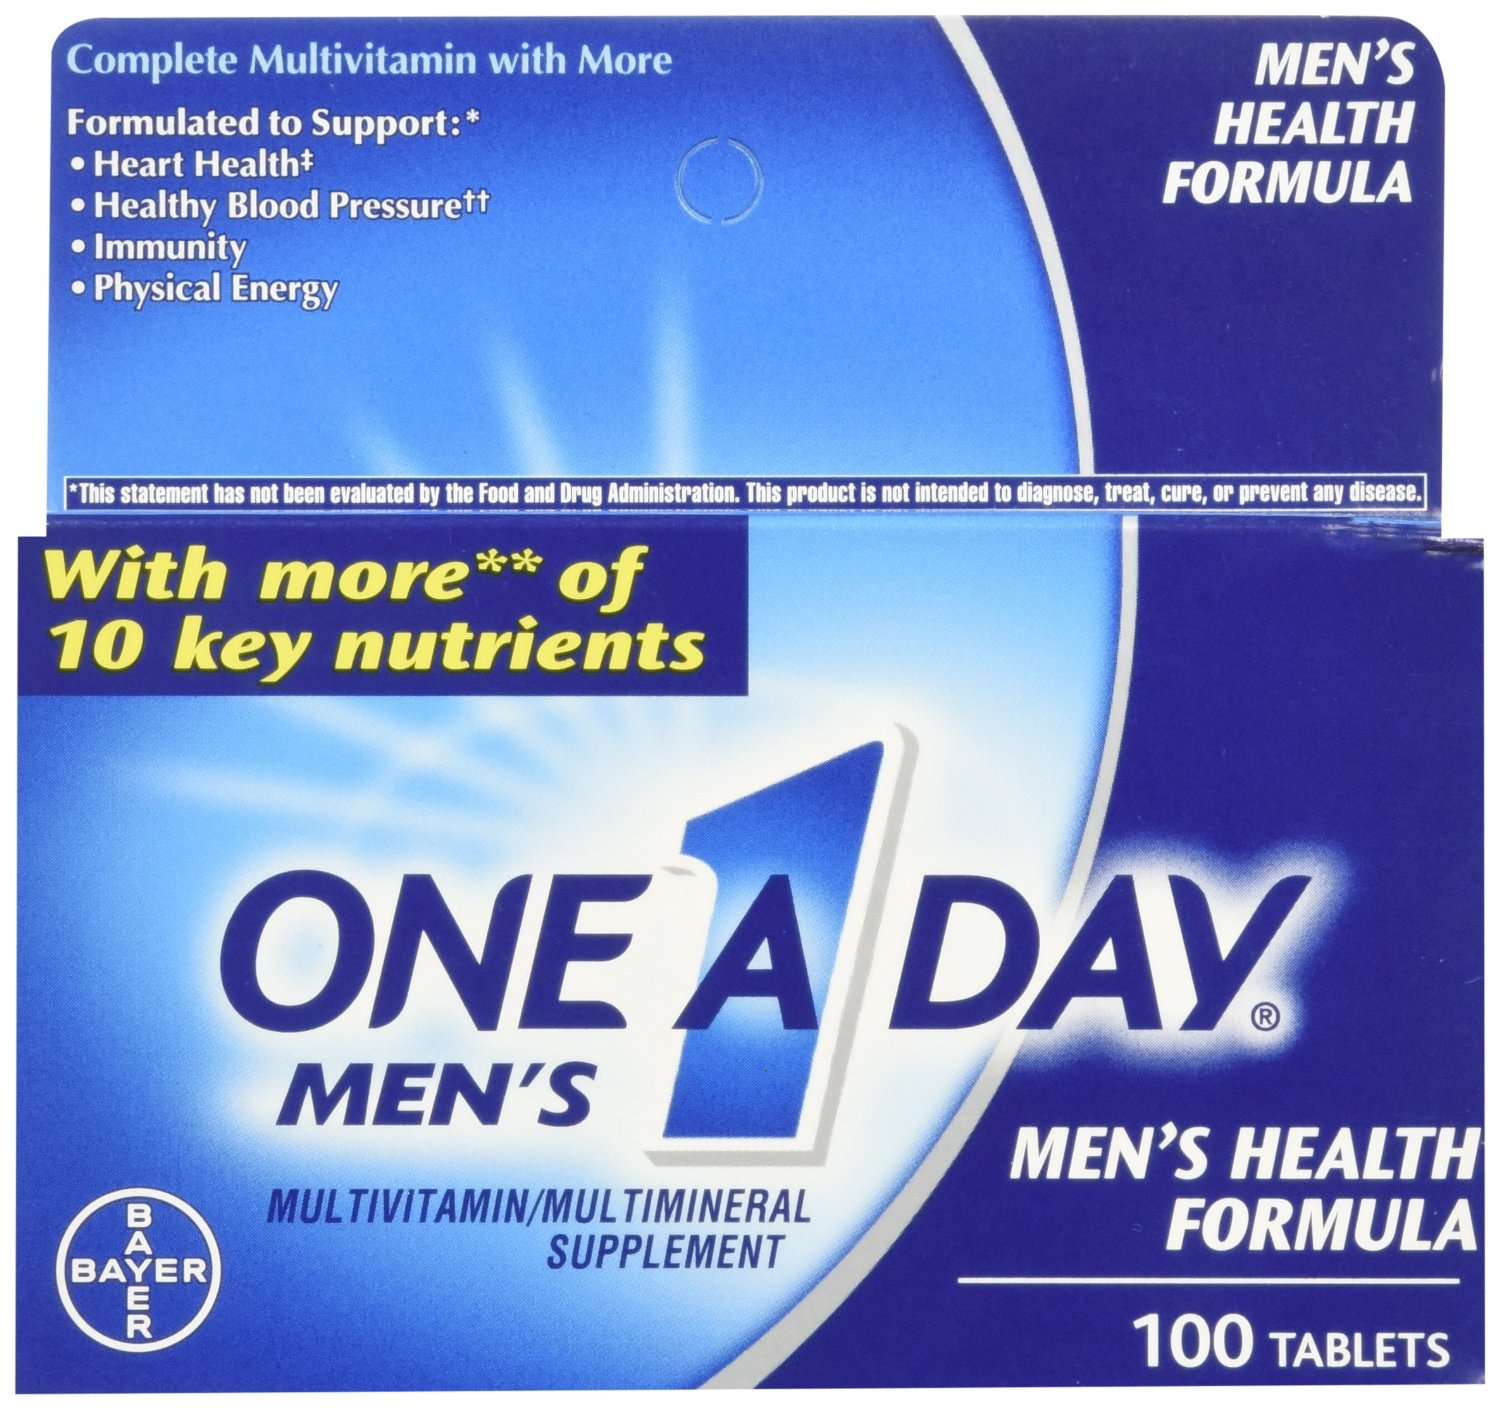 One-A-Day One-A-Day Men's Multivitamin Multimineral Supplement, 100 tabs